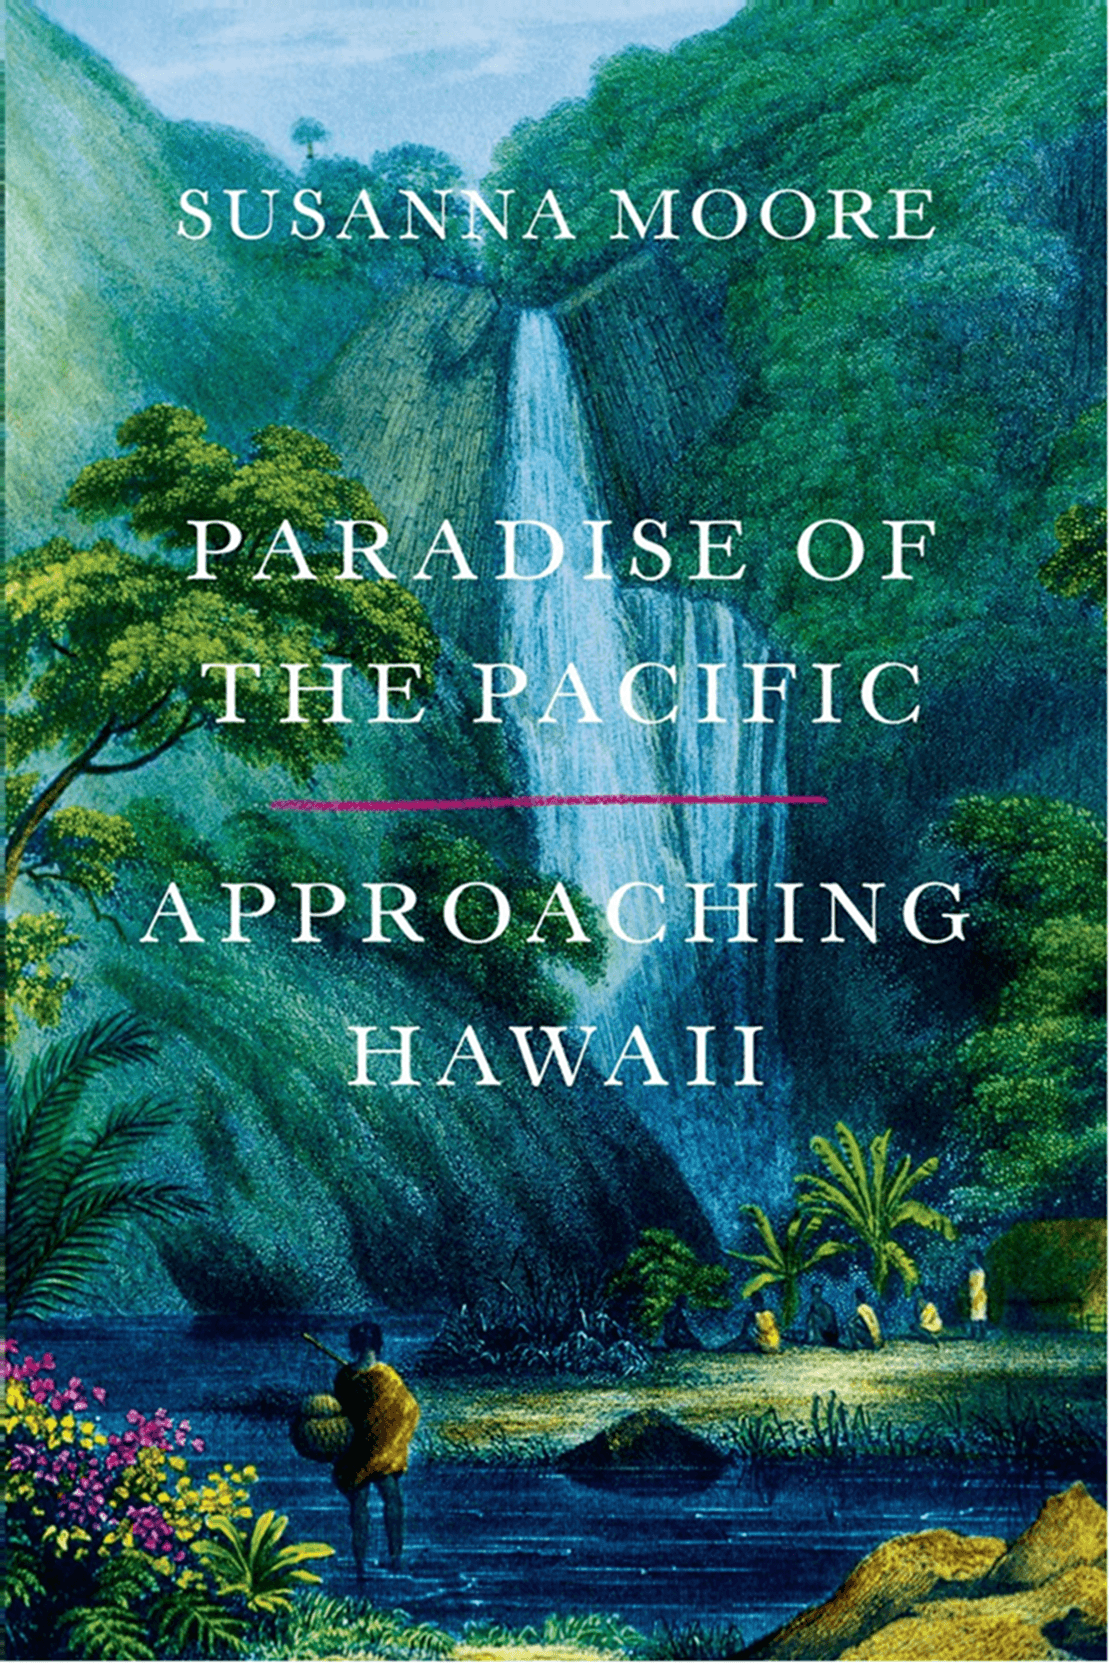 'Paradise of the Pacific' by Susanna Moore